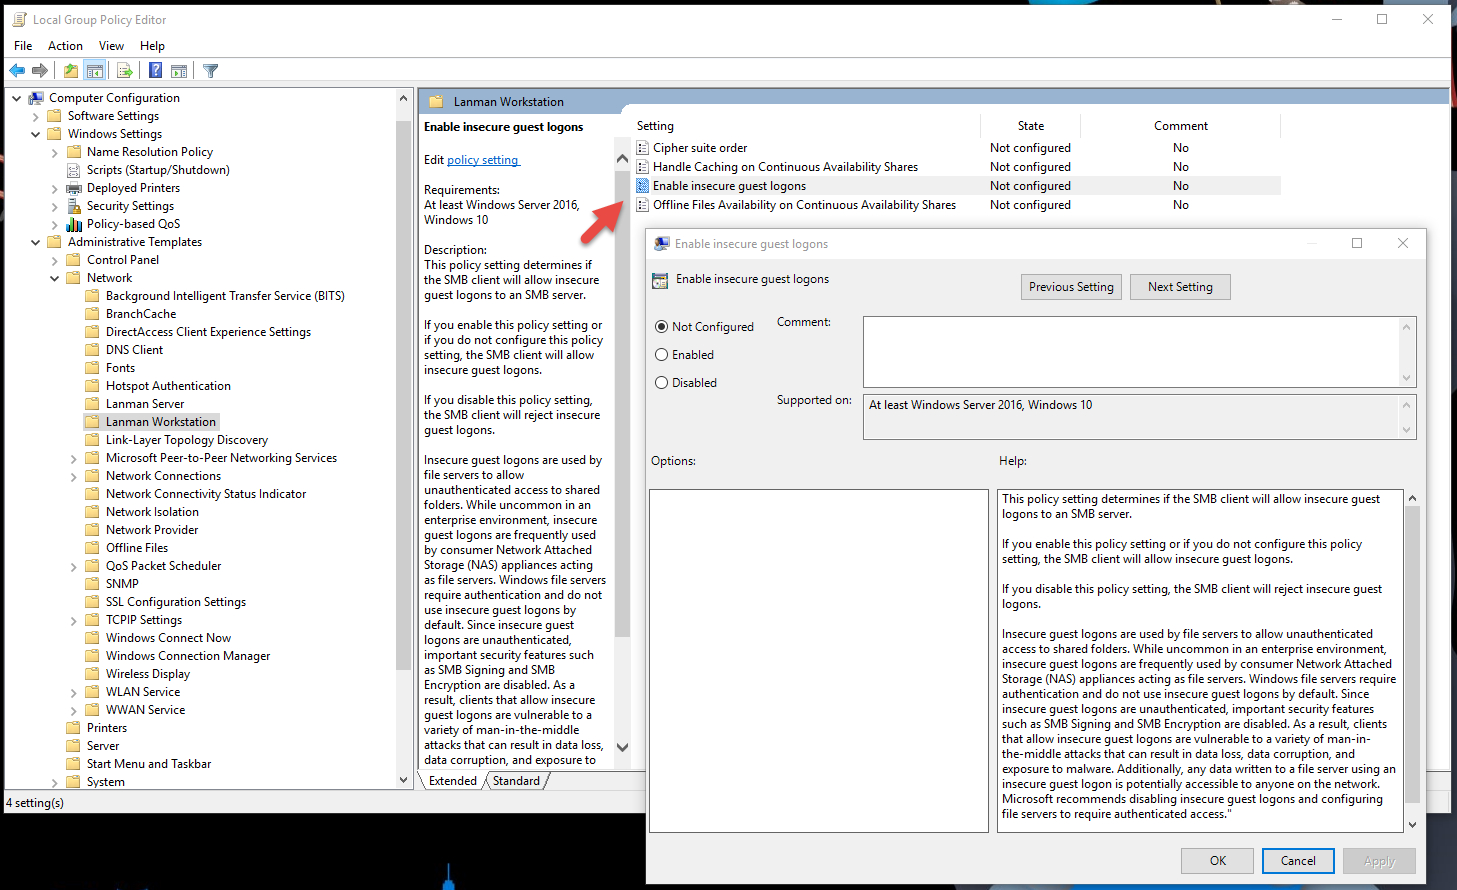 Windows 10 Group Policy Settings Spreadsheet For Securing Windows Workstations: Developing A Secure Baseline – Active